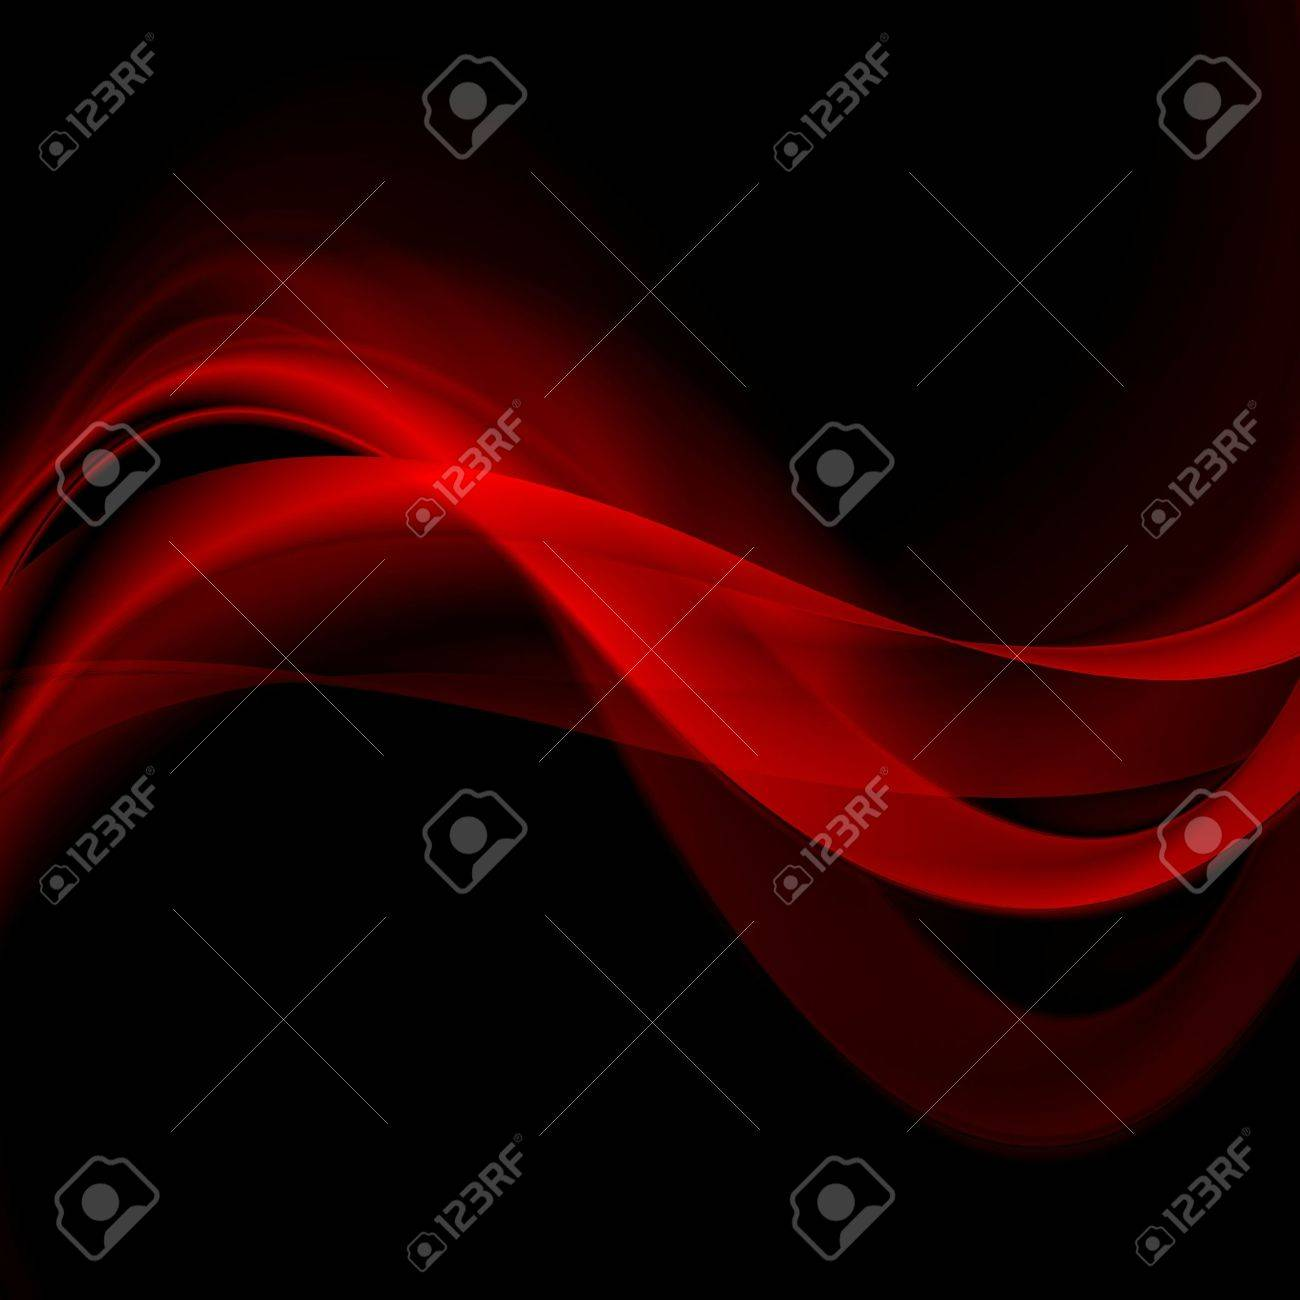 Bright red glowing waves on black background. Vector abstract wavy graphic design - 56767367